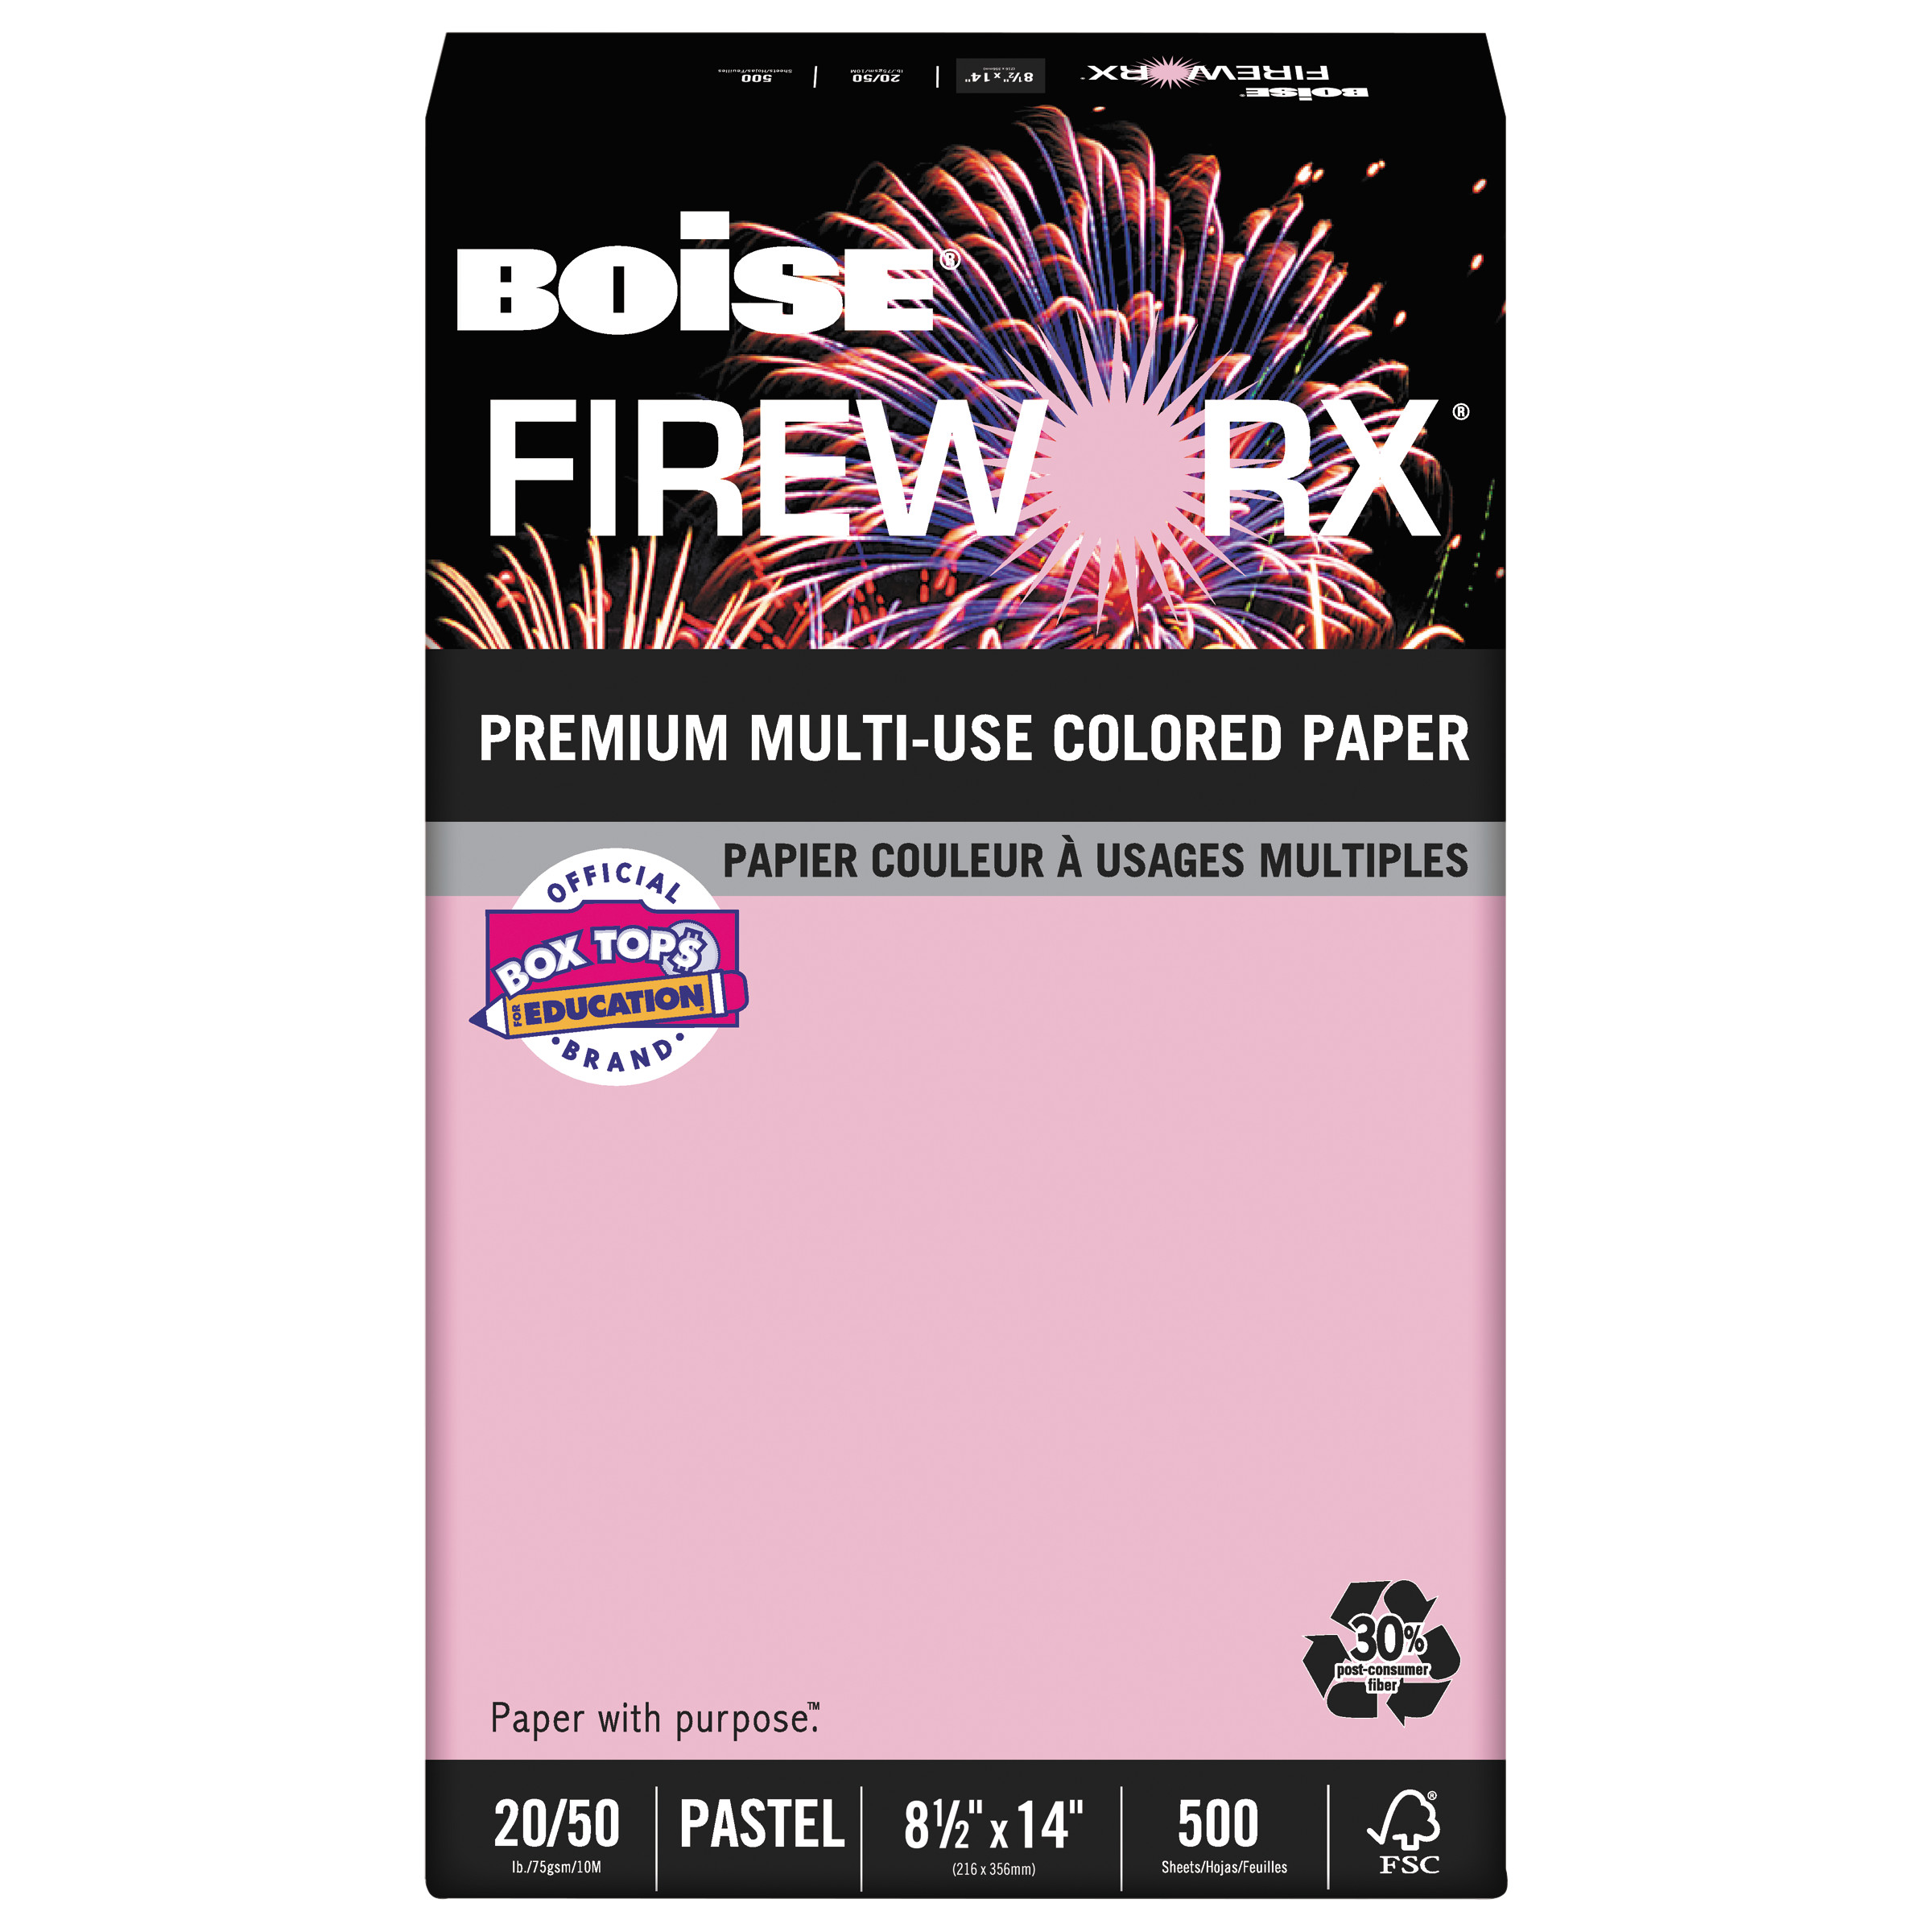 Boise FIREWORX Colored Paper, 20lb, 8-1/2 x 14, Powder Pink, 500 Sheets/Ream -CASMP2204PK